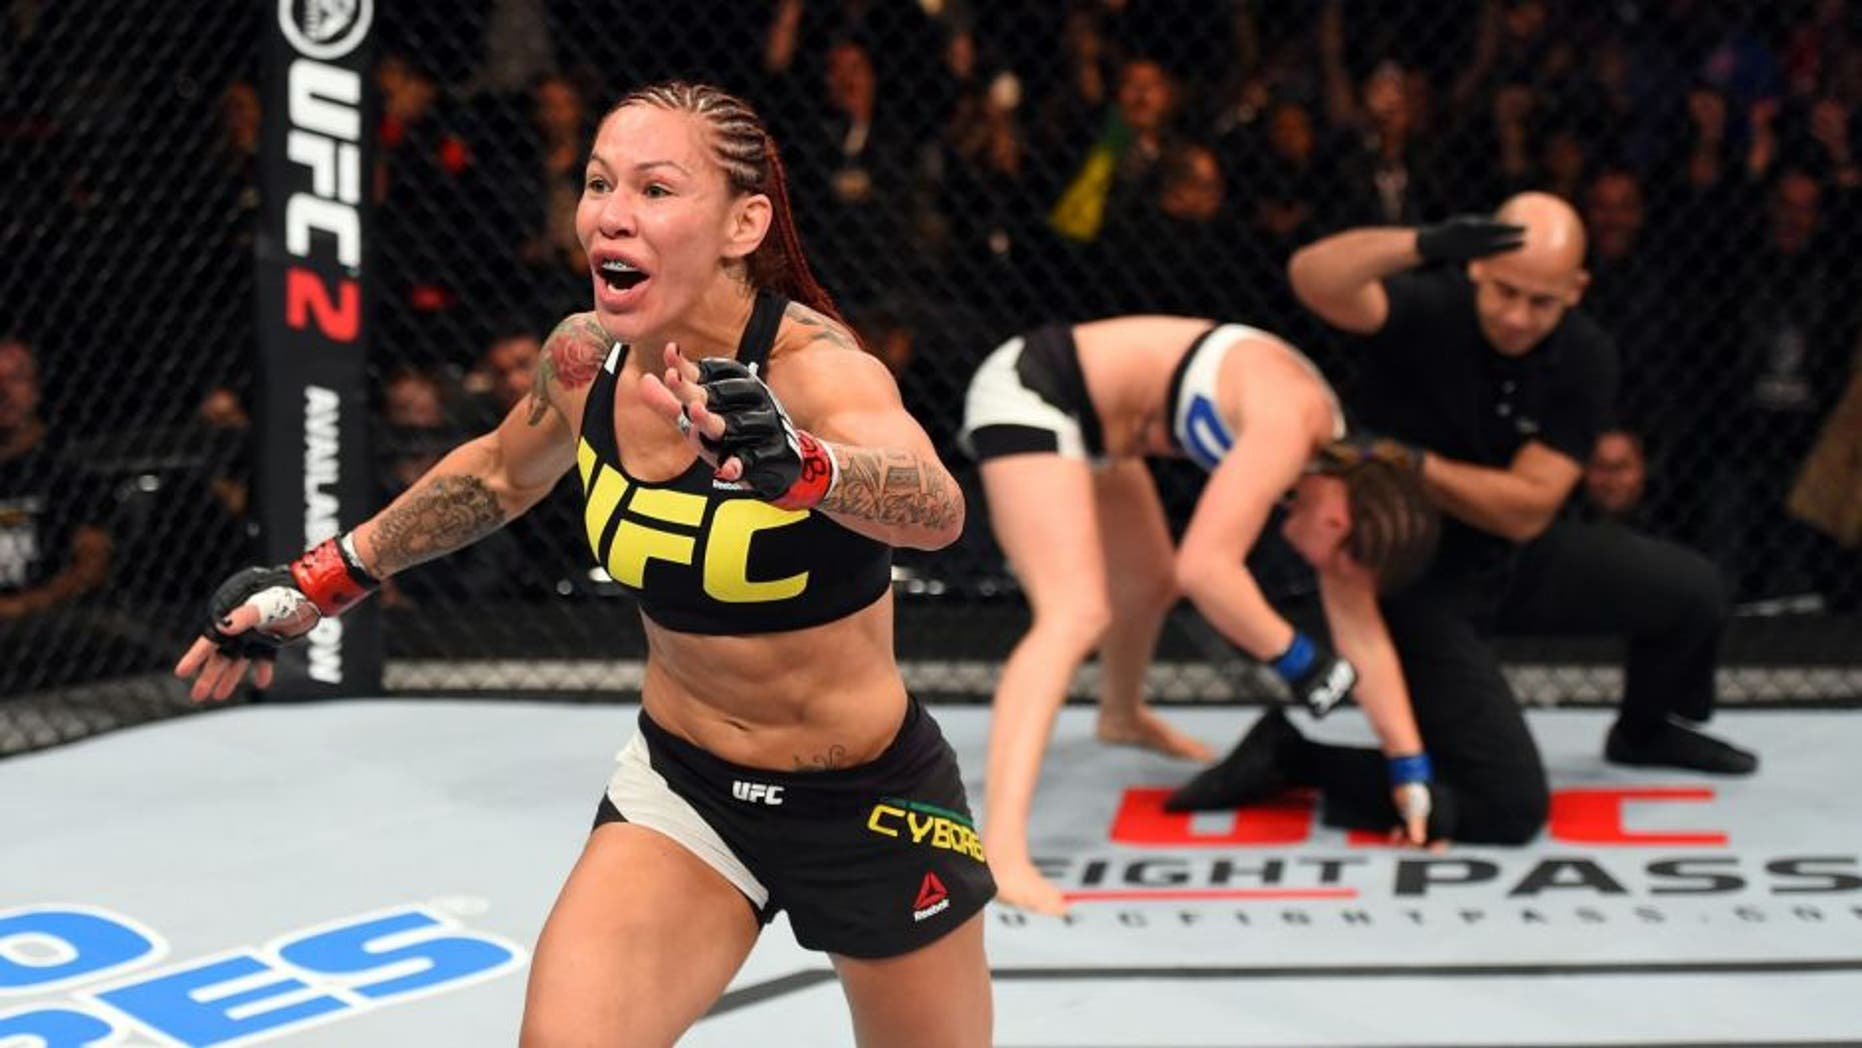 CURITIBA, BRAZIL - MAY 14: (L-R) Cristiane 'Cyborg' Justino of Brazil celebrates after defeating Leslie Smith in their women's catchweight bout during the UFC 198 event at Arena da Baixada stadium on May 14, 2016 in Curitiba, Parana, Brazil. (Photo by Josh Hedges/Zuffa LLC/Zuffa LLC via Getty Images)